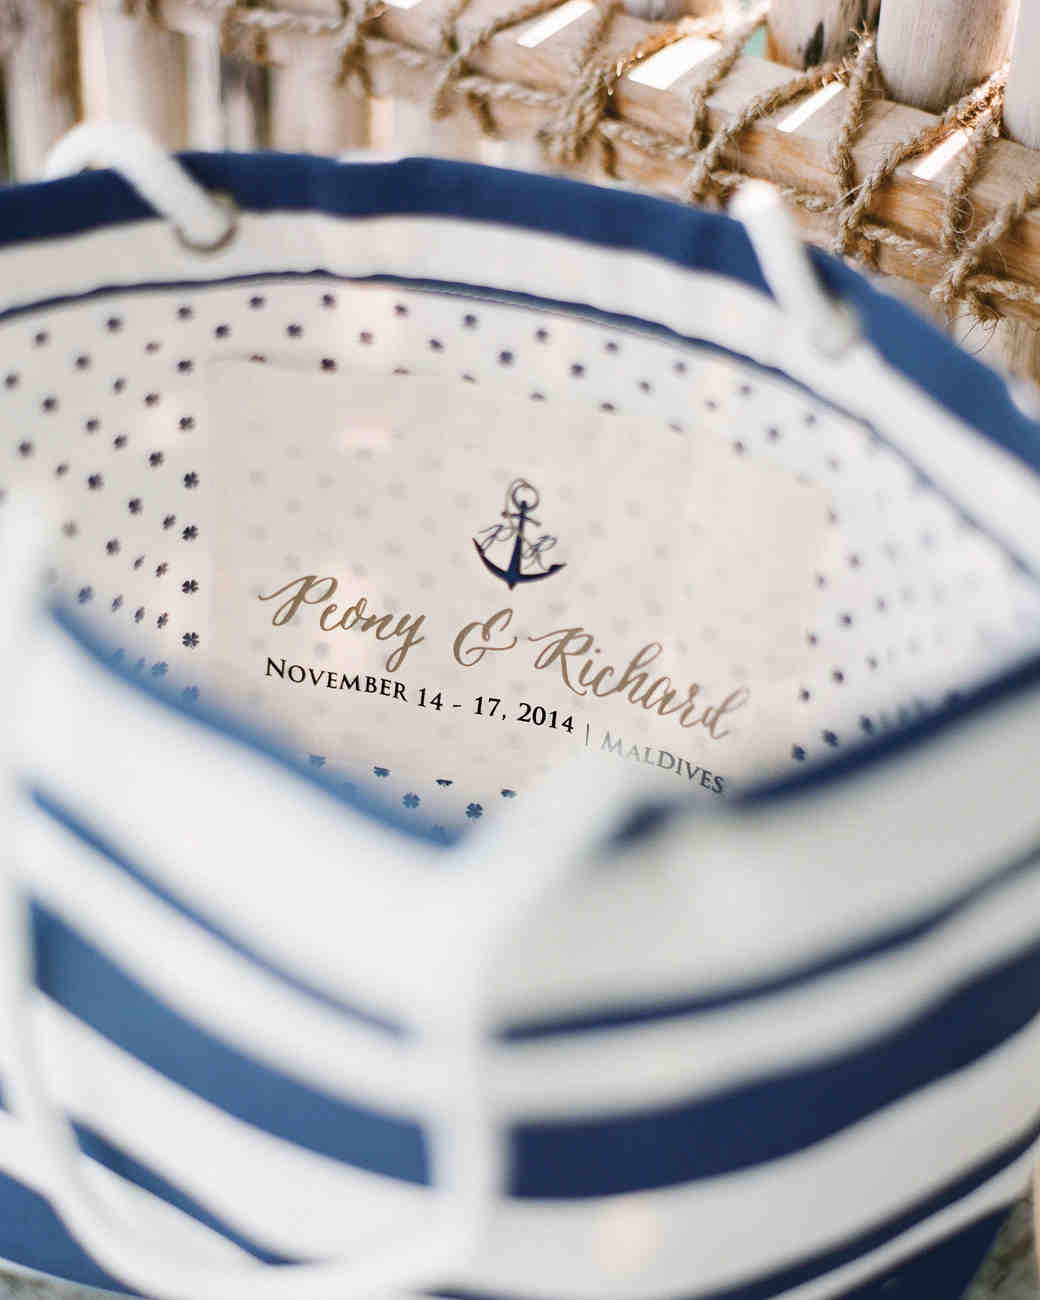 Gift Ideas For Destination Wedding: 13 Destination Wedding Favors That Gave A Nod To Their